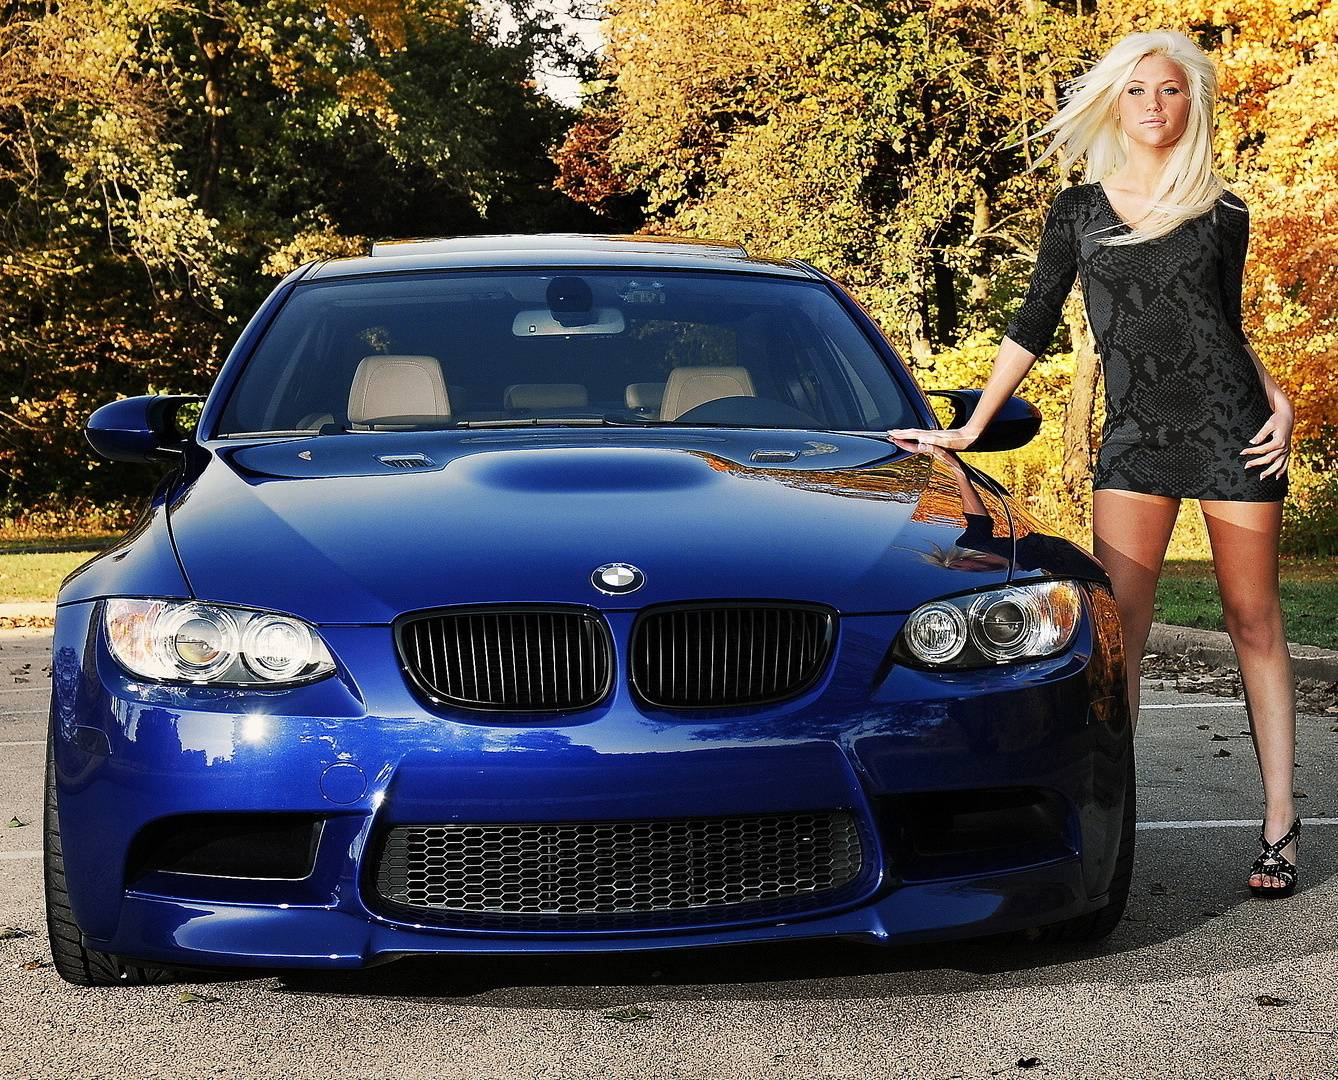 M3 With Girl